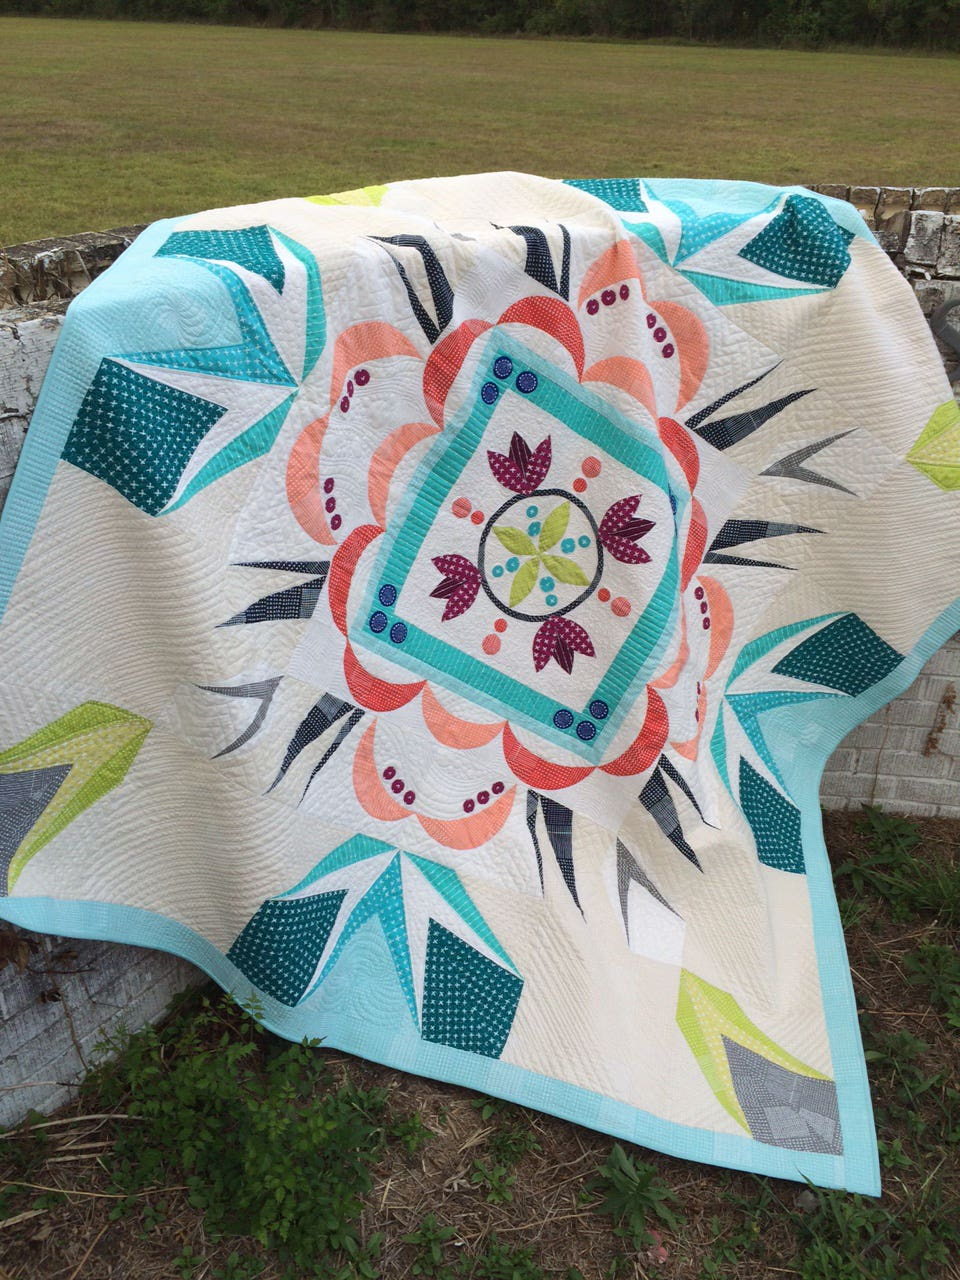 Quilt draped over a stone wall outdoors.